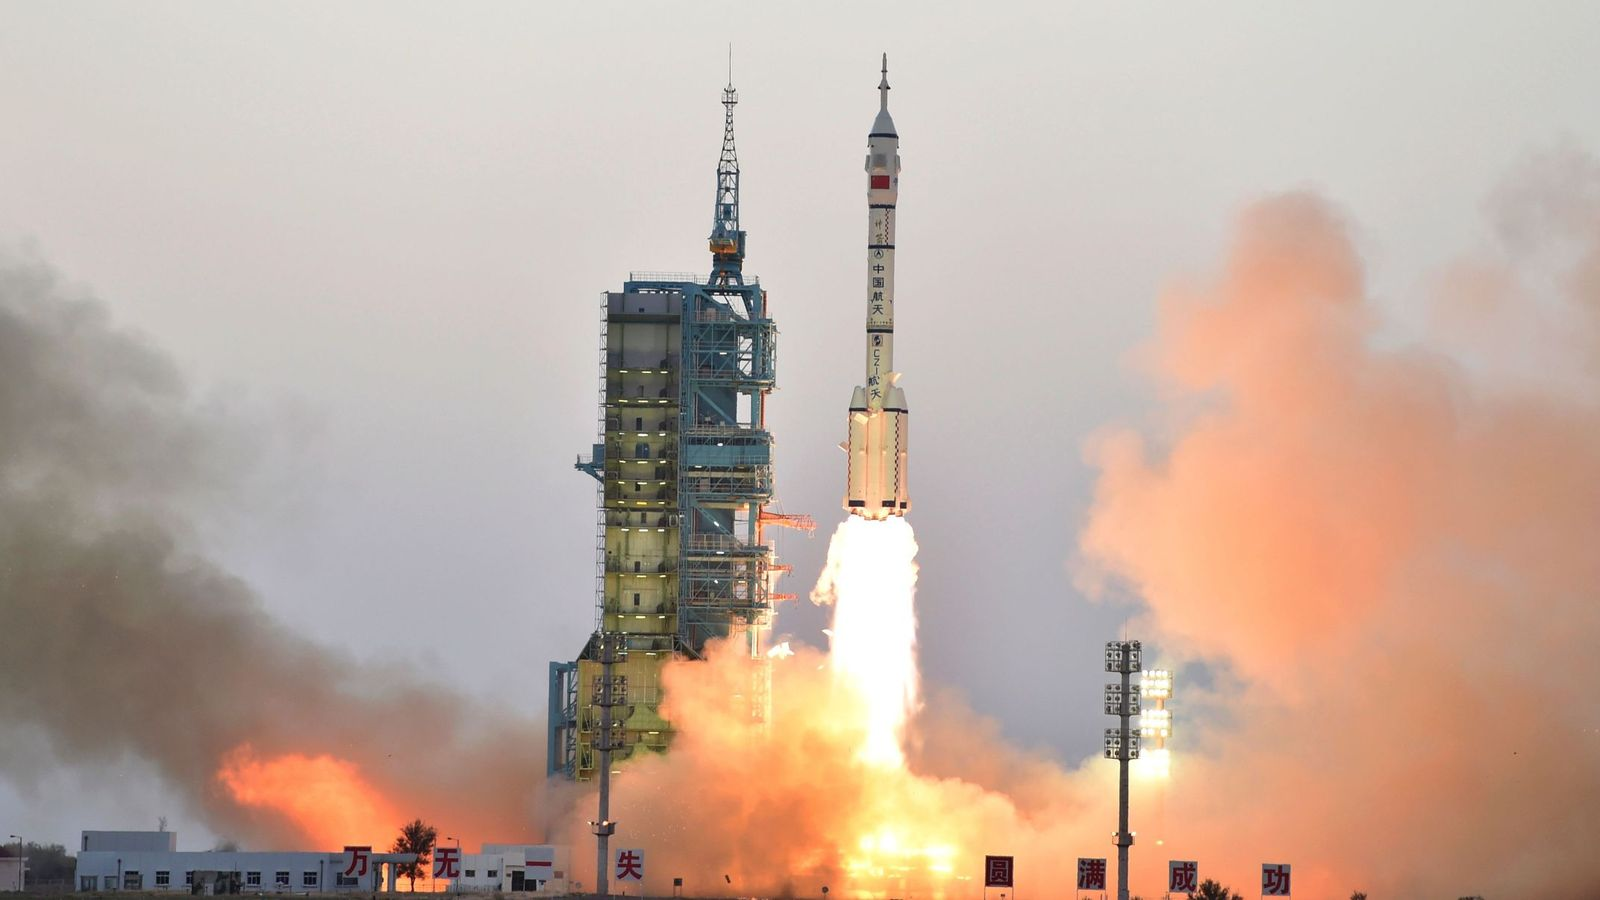 China's 'secretive' reusable spacecraft lands successfully - state media